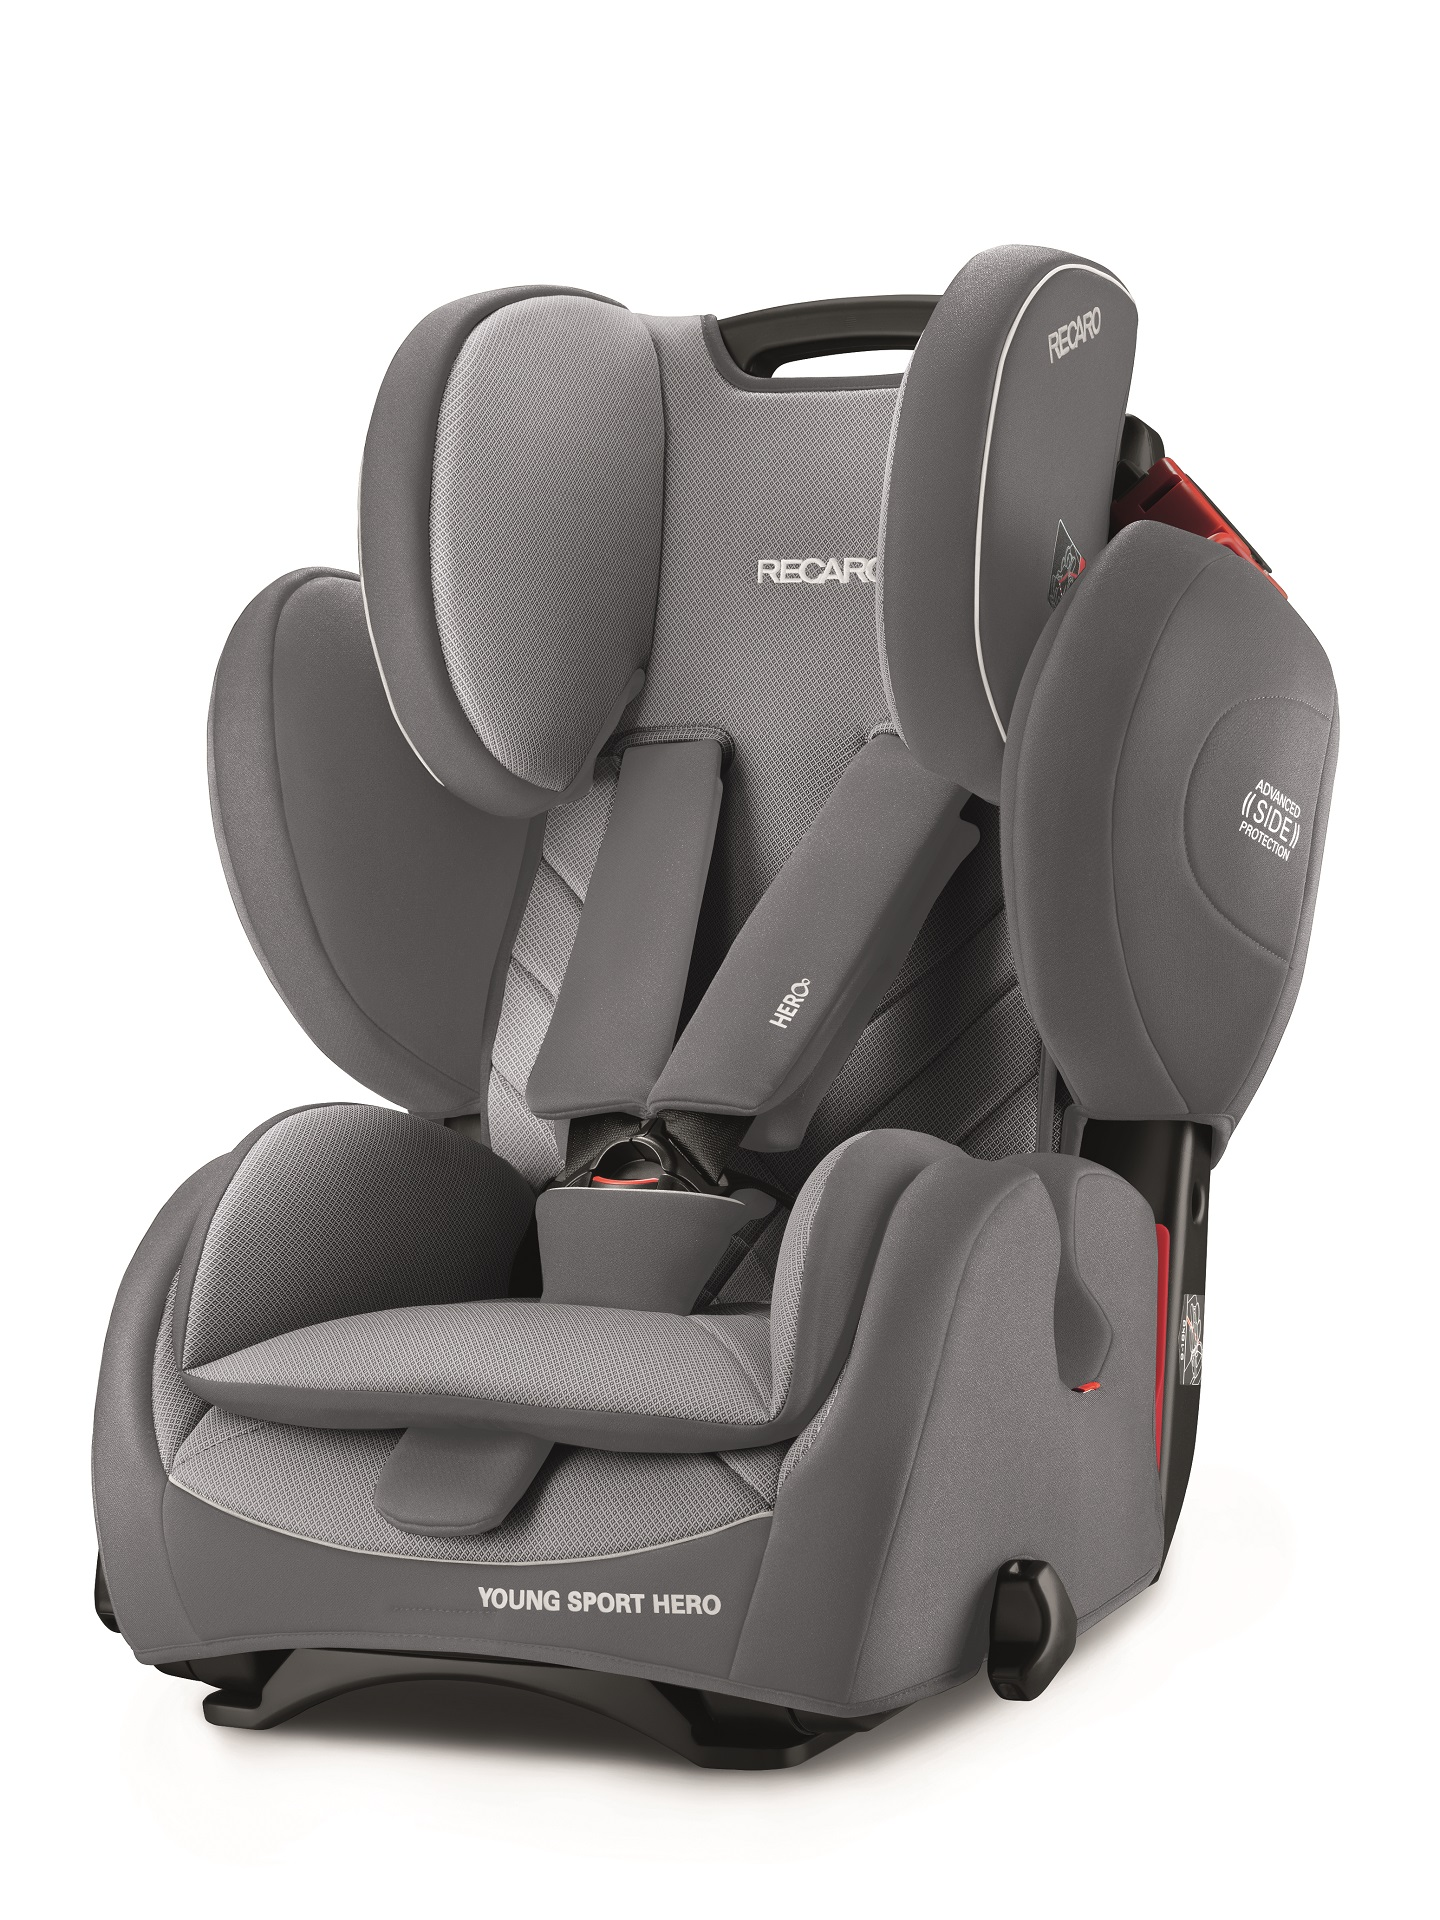 Recaro Child Car Seat Young Sport Hero Aluminium Grey 2018   Large Image 1  ...